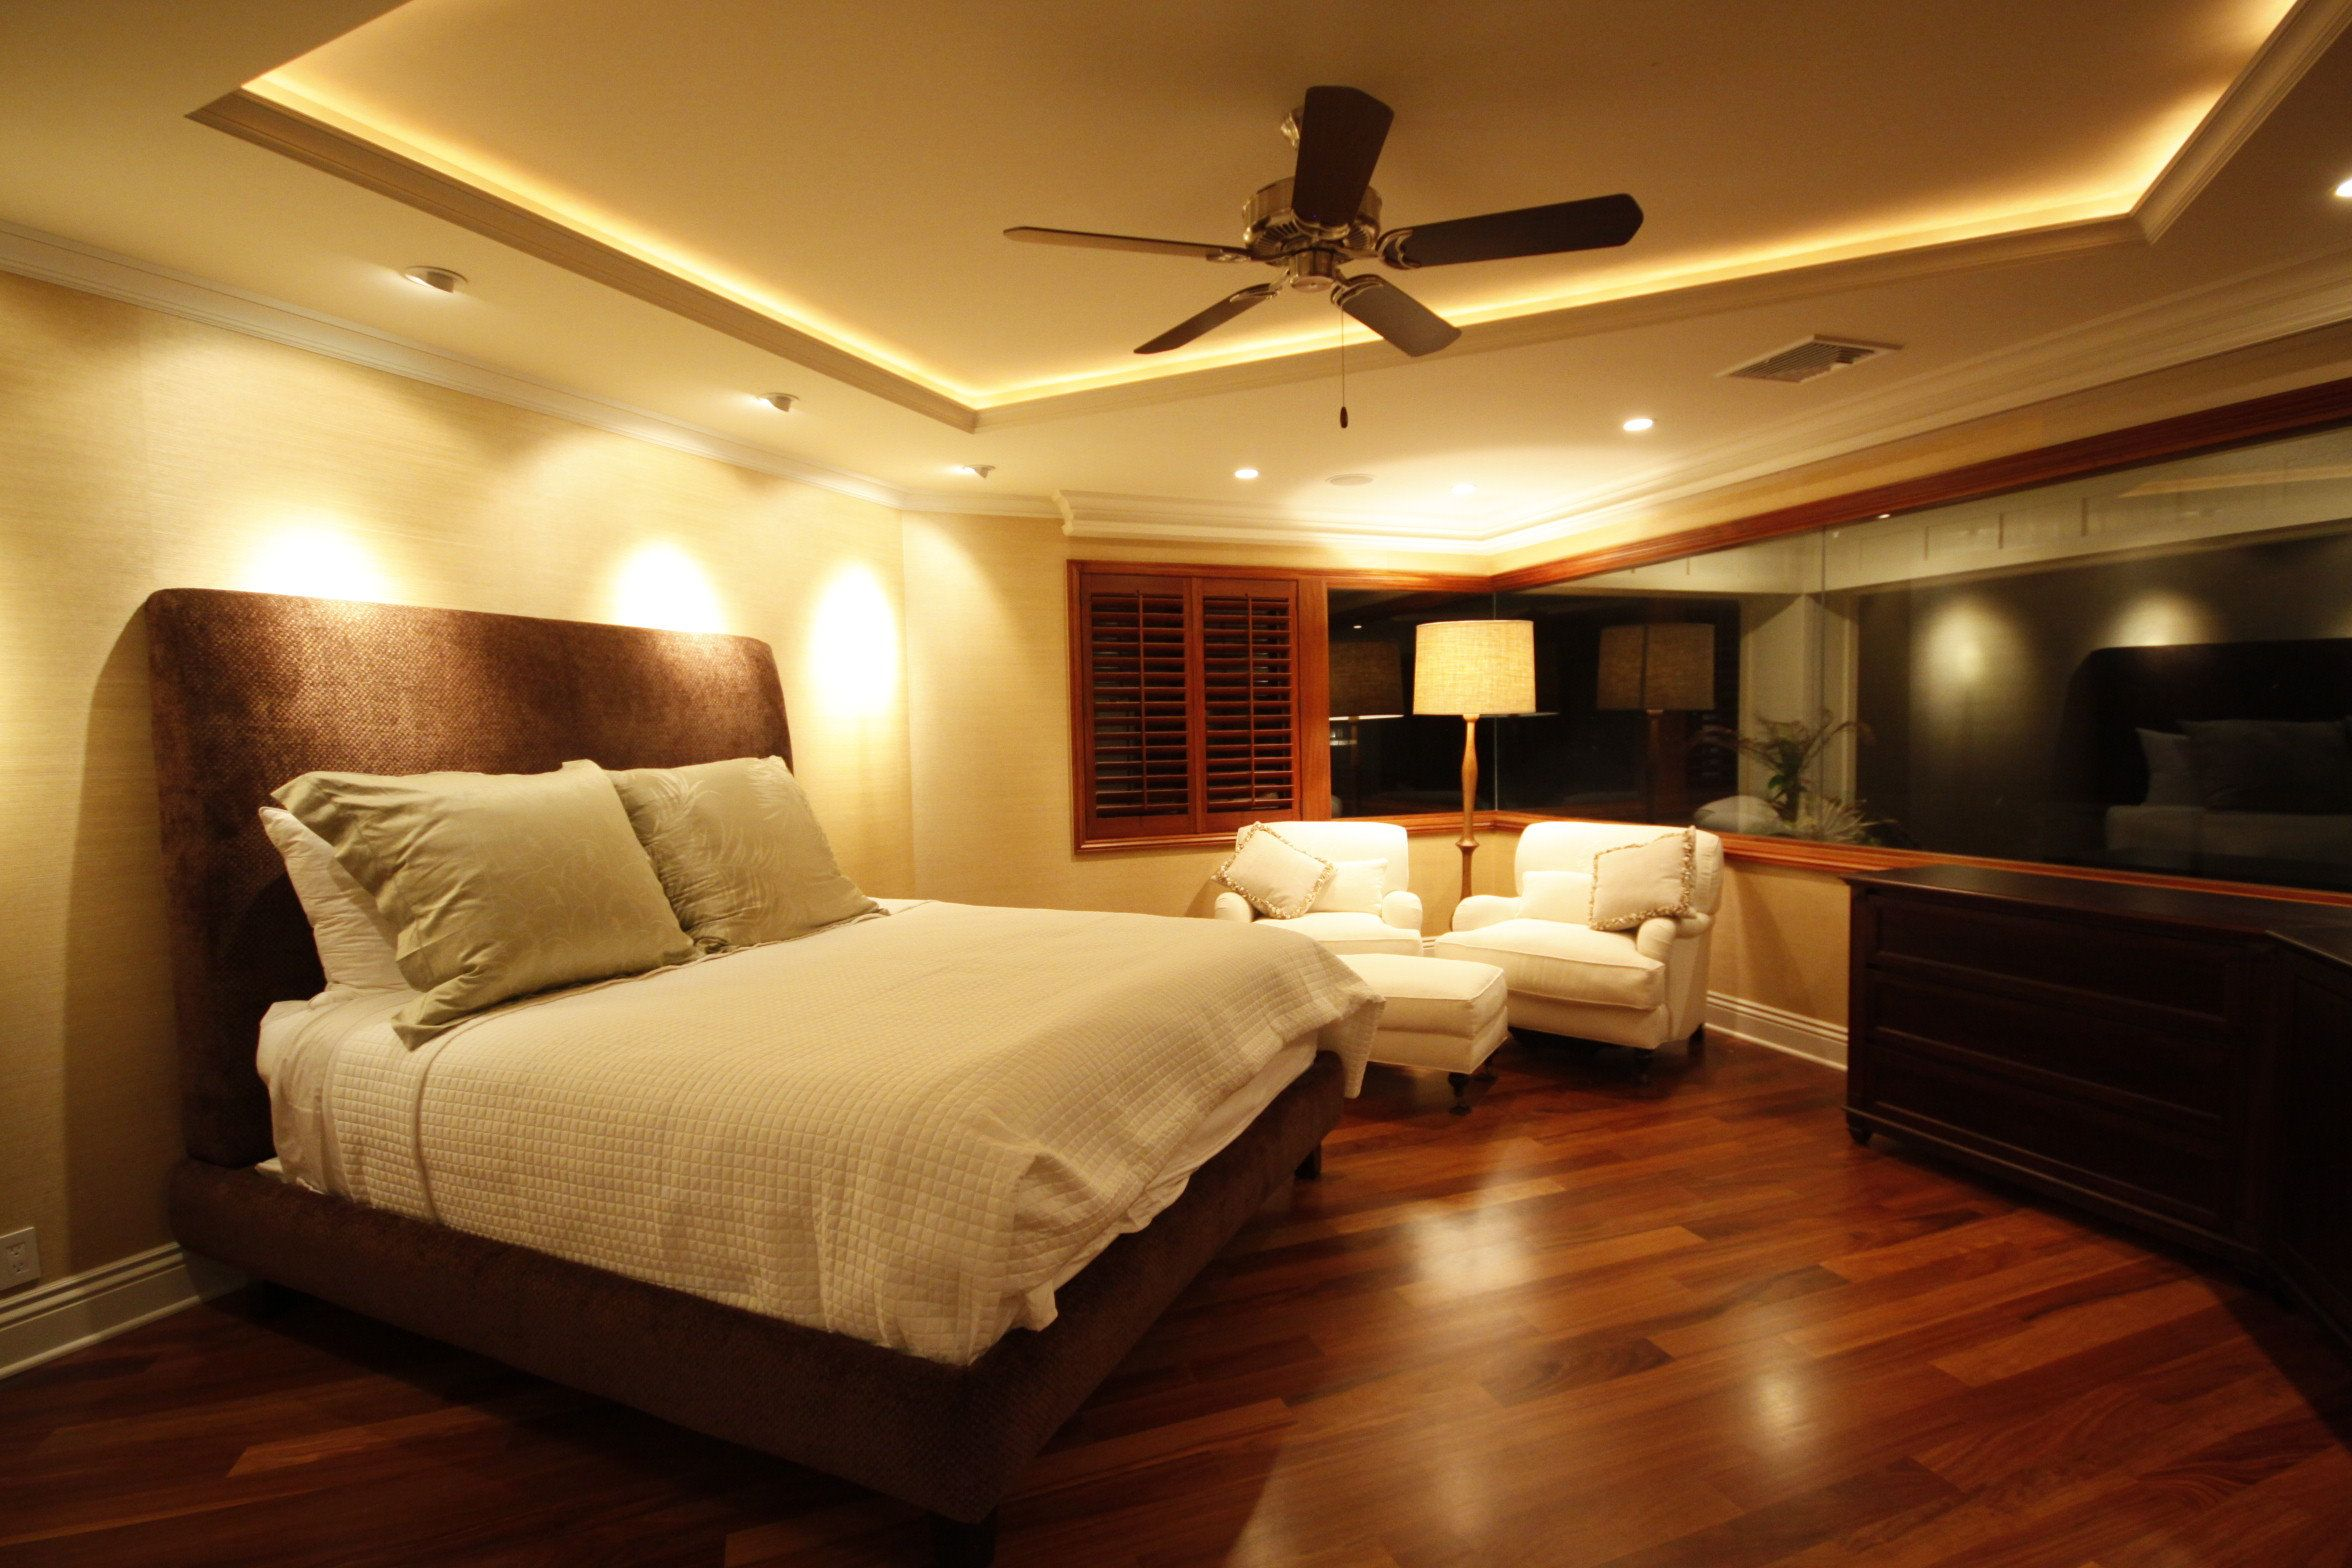 Appealing master bedroom modern decor with wooden floors for Pictures of master bedroom designs